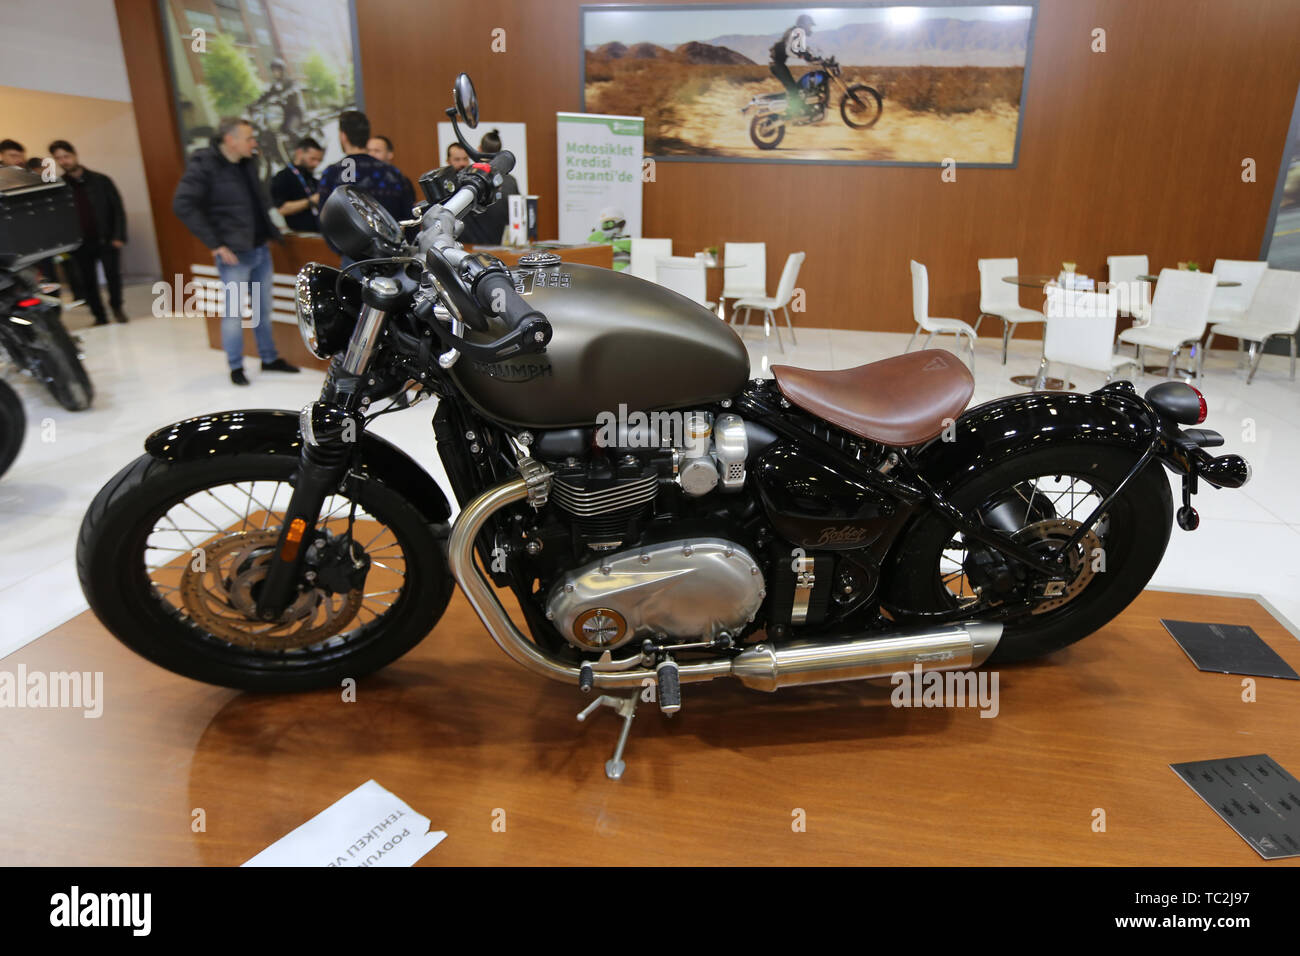 ISTANBUL, TURKEY - FEBRUARY 23, 2019: Triumph Motorcycle on display at Motobike Istanbul in Istanbul Exhibition Center - Stock Image